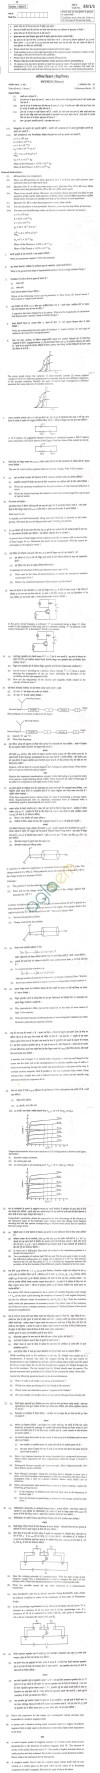 CBSE Board Exam 2013 Class XII Question Paper -Physics